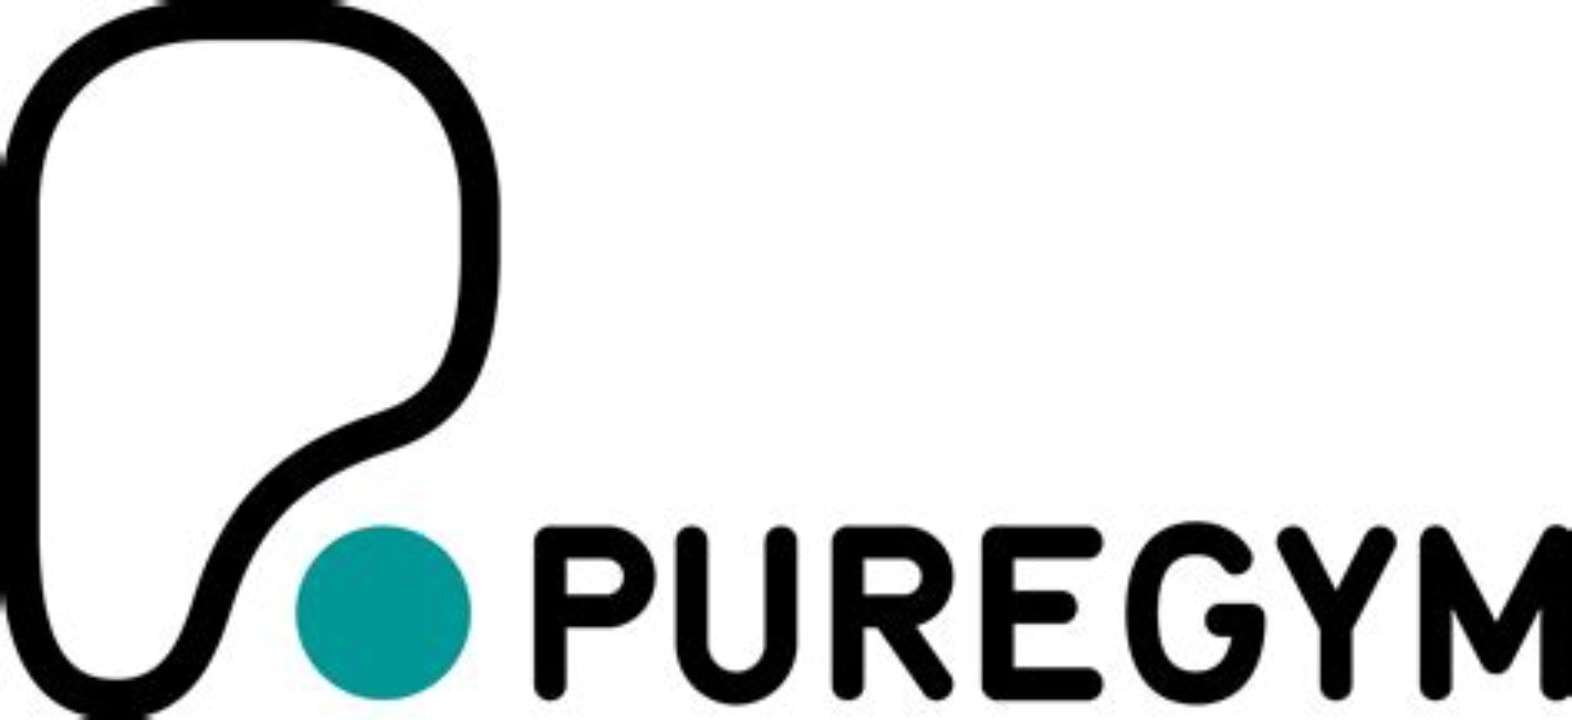 Puregym day pass